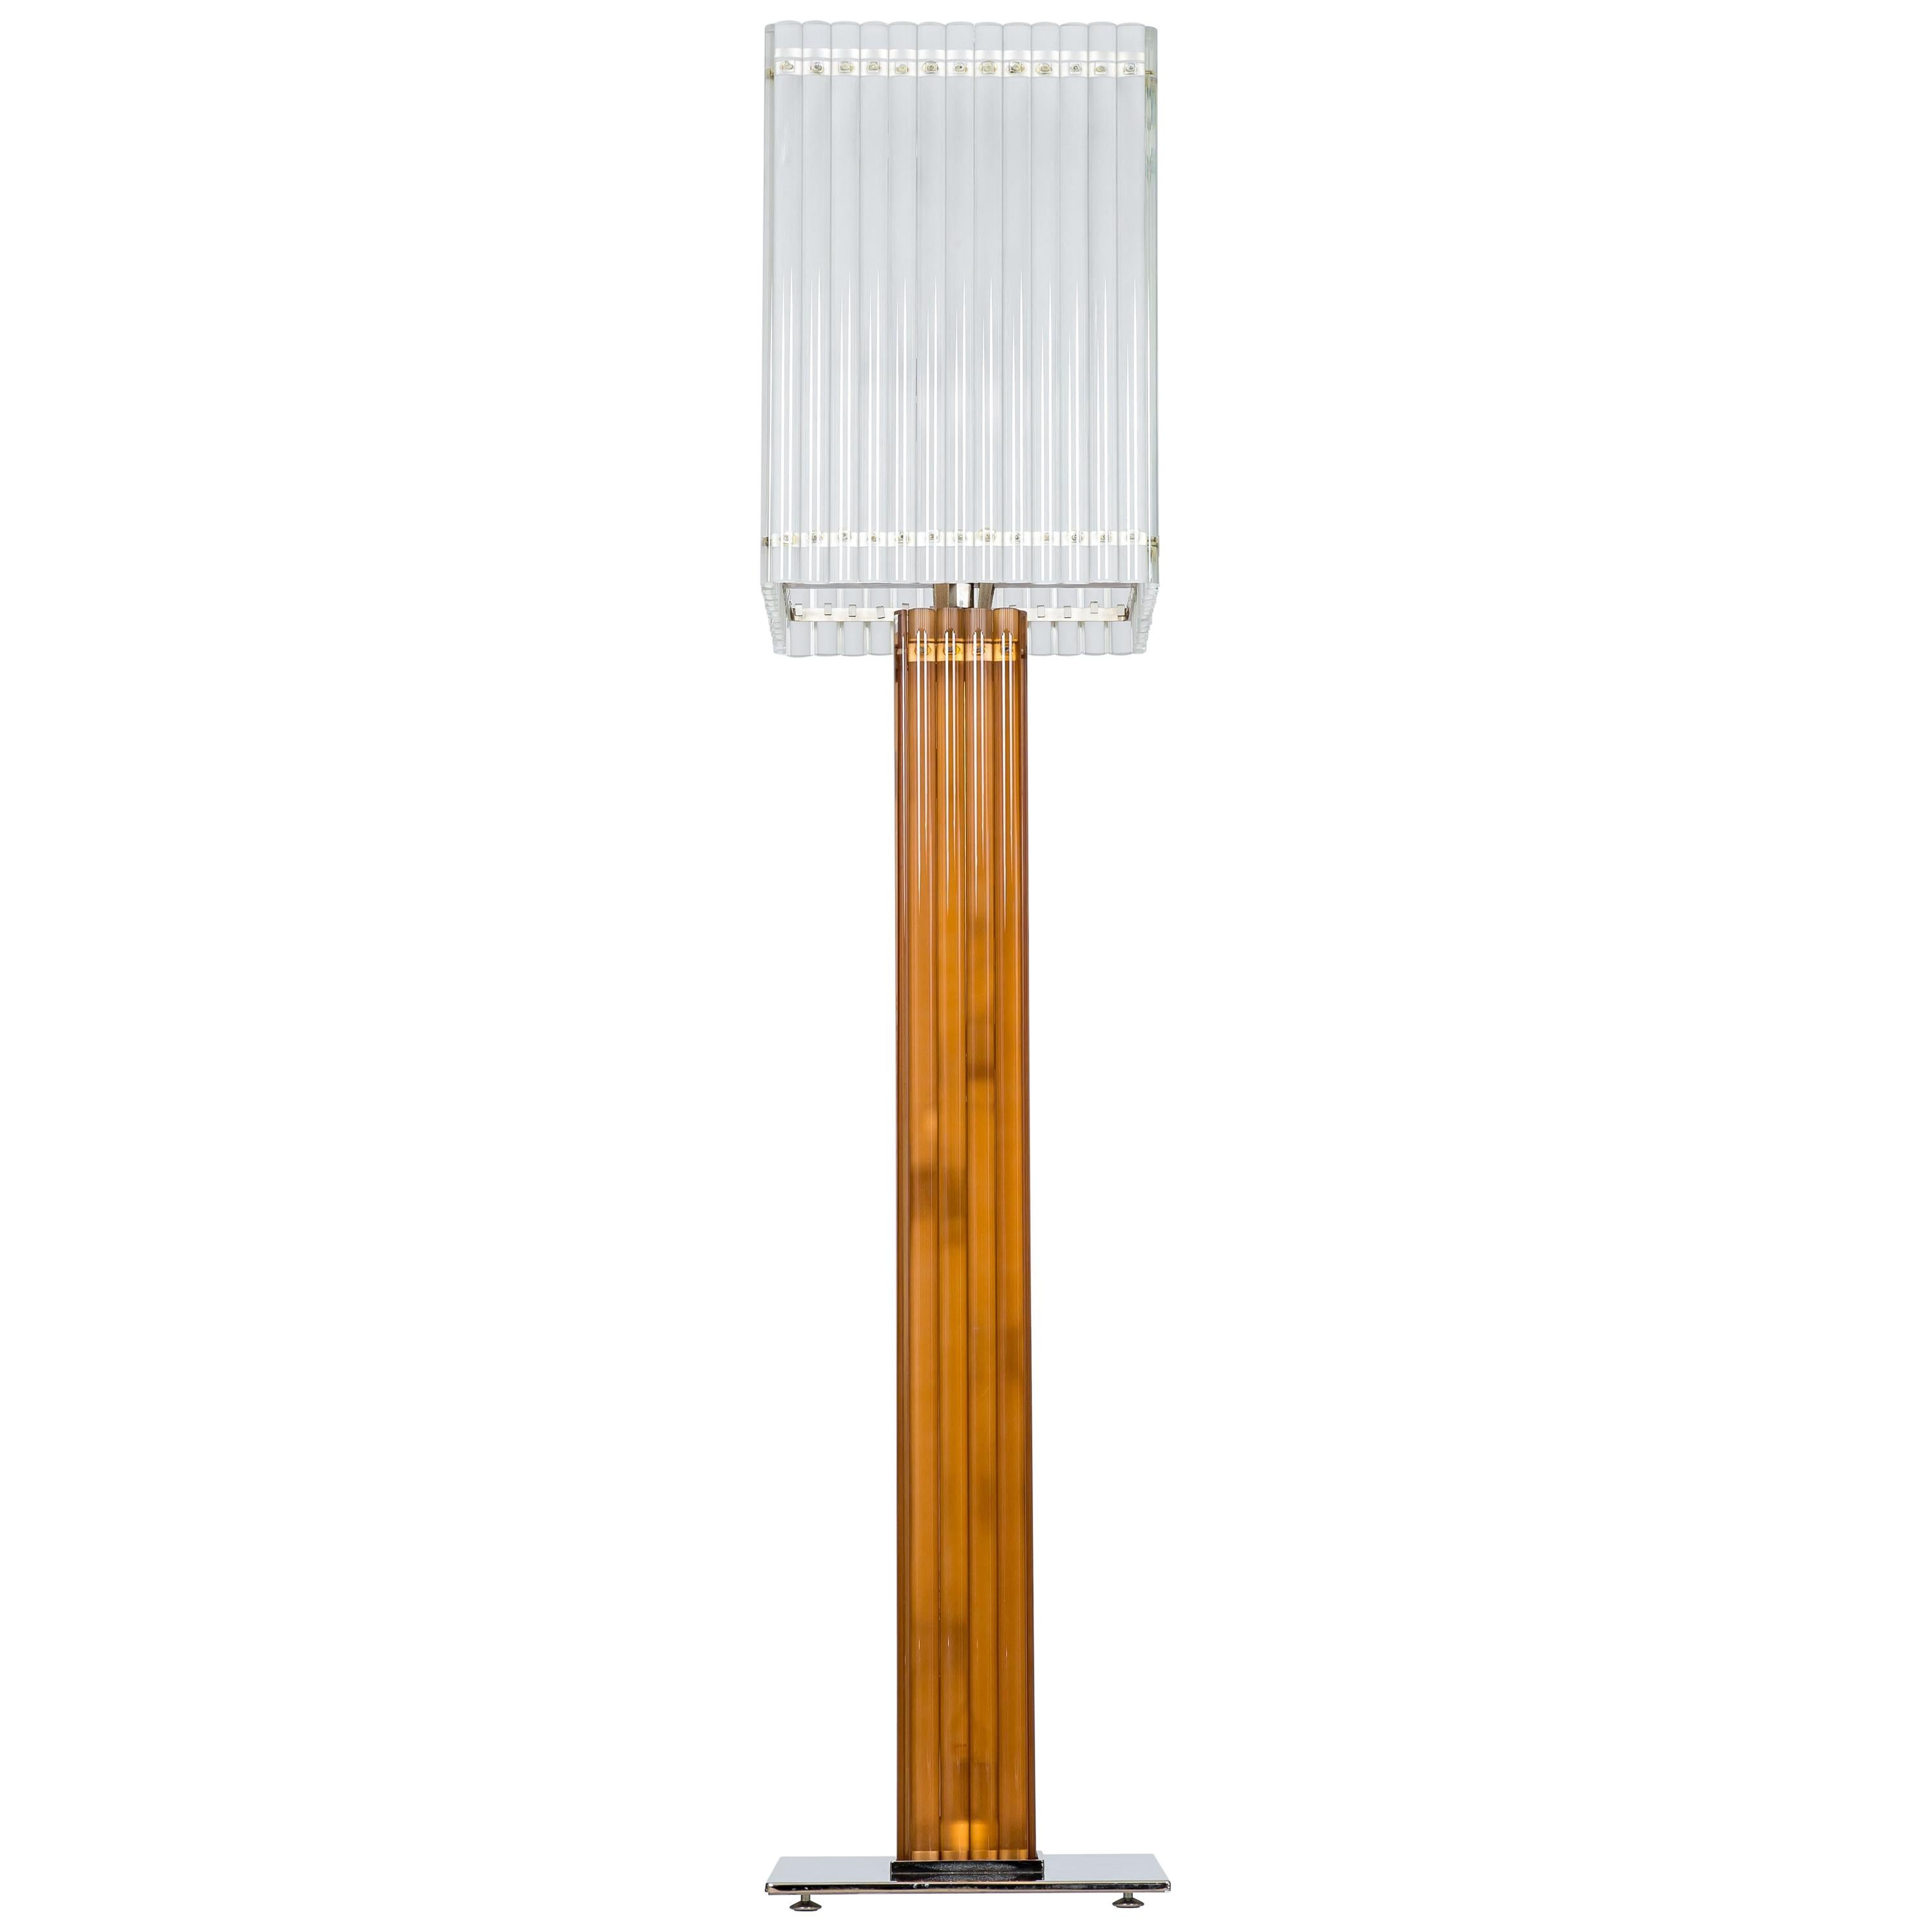 Murano Glass Deco Floor Lamp with Sandblast and Amber Color, Italy